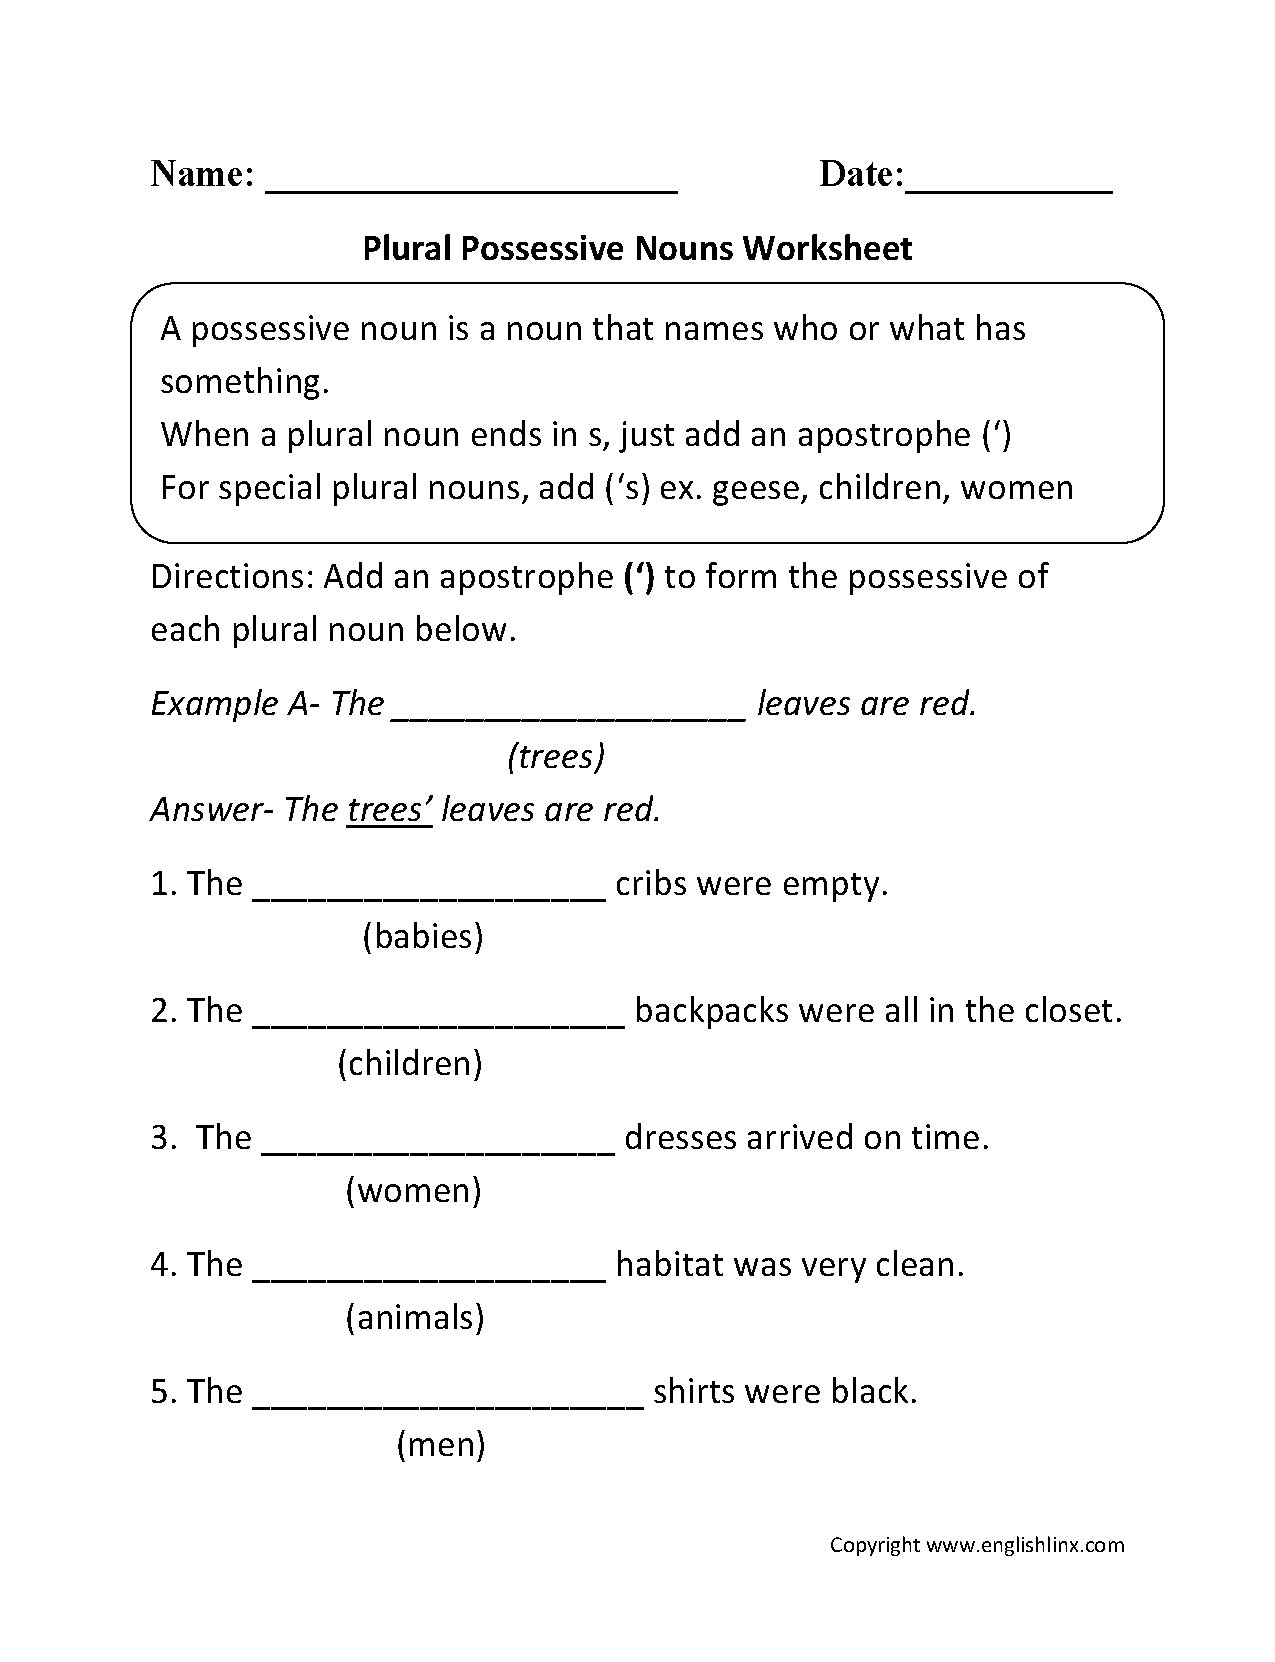 Aldiablosus  Fascinating Nouns Worksheets  Possessive Nouns Worksheets With Heavenly Possessive Nouns Worksheets With Amazing Worksheets For Grade  Maths Also Verb Worksheets Esl In Addition Mnemonic Worksheets And Body Organs Worksheet As Well As Land And Water Worksheets Additionally Free Reading Comprehension Worksheets For Grade  From Englishlinxcom With Aldiablosus  Heavenly Nouns Worksheets  Possessive Nouns Worksheets With Amazing Possessive Nouns Worksheets And Fascinating Worksheets For Grade  Maths Also Verb Worksheets Esl In Addition Mnemonic Worksheets From Englishlinxcom